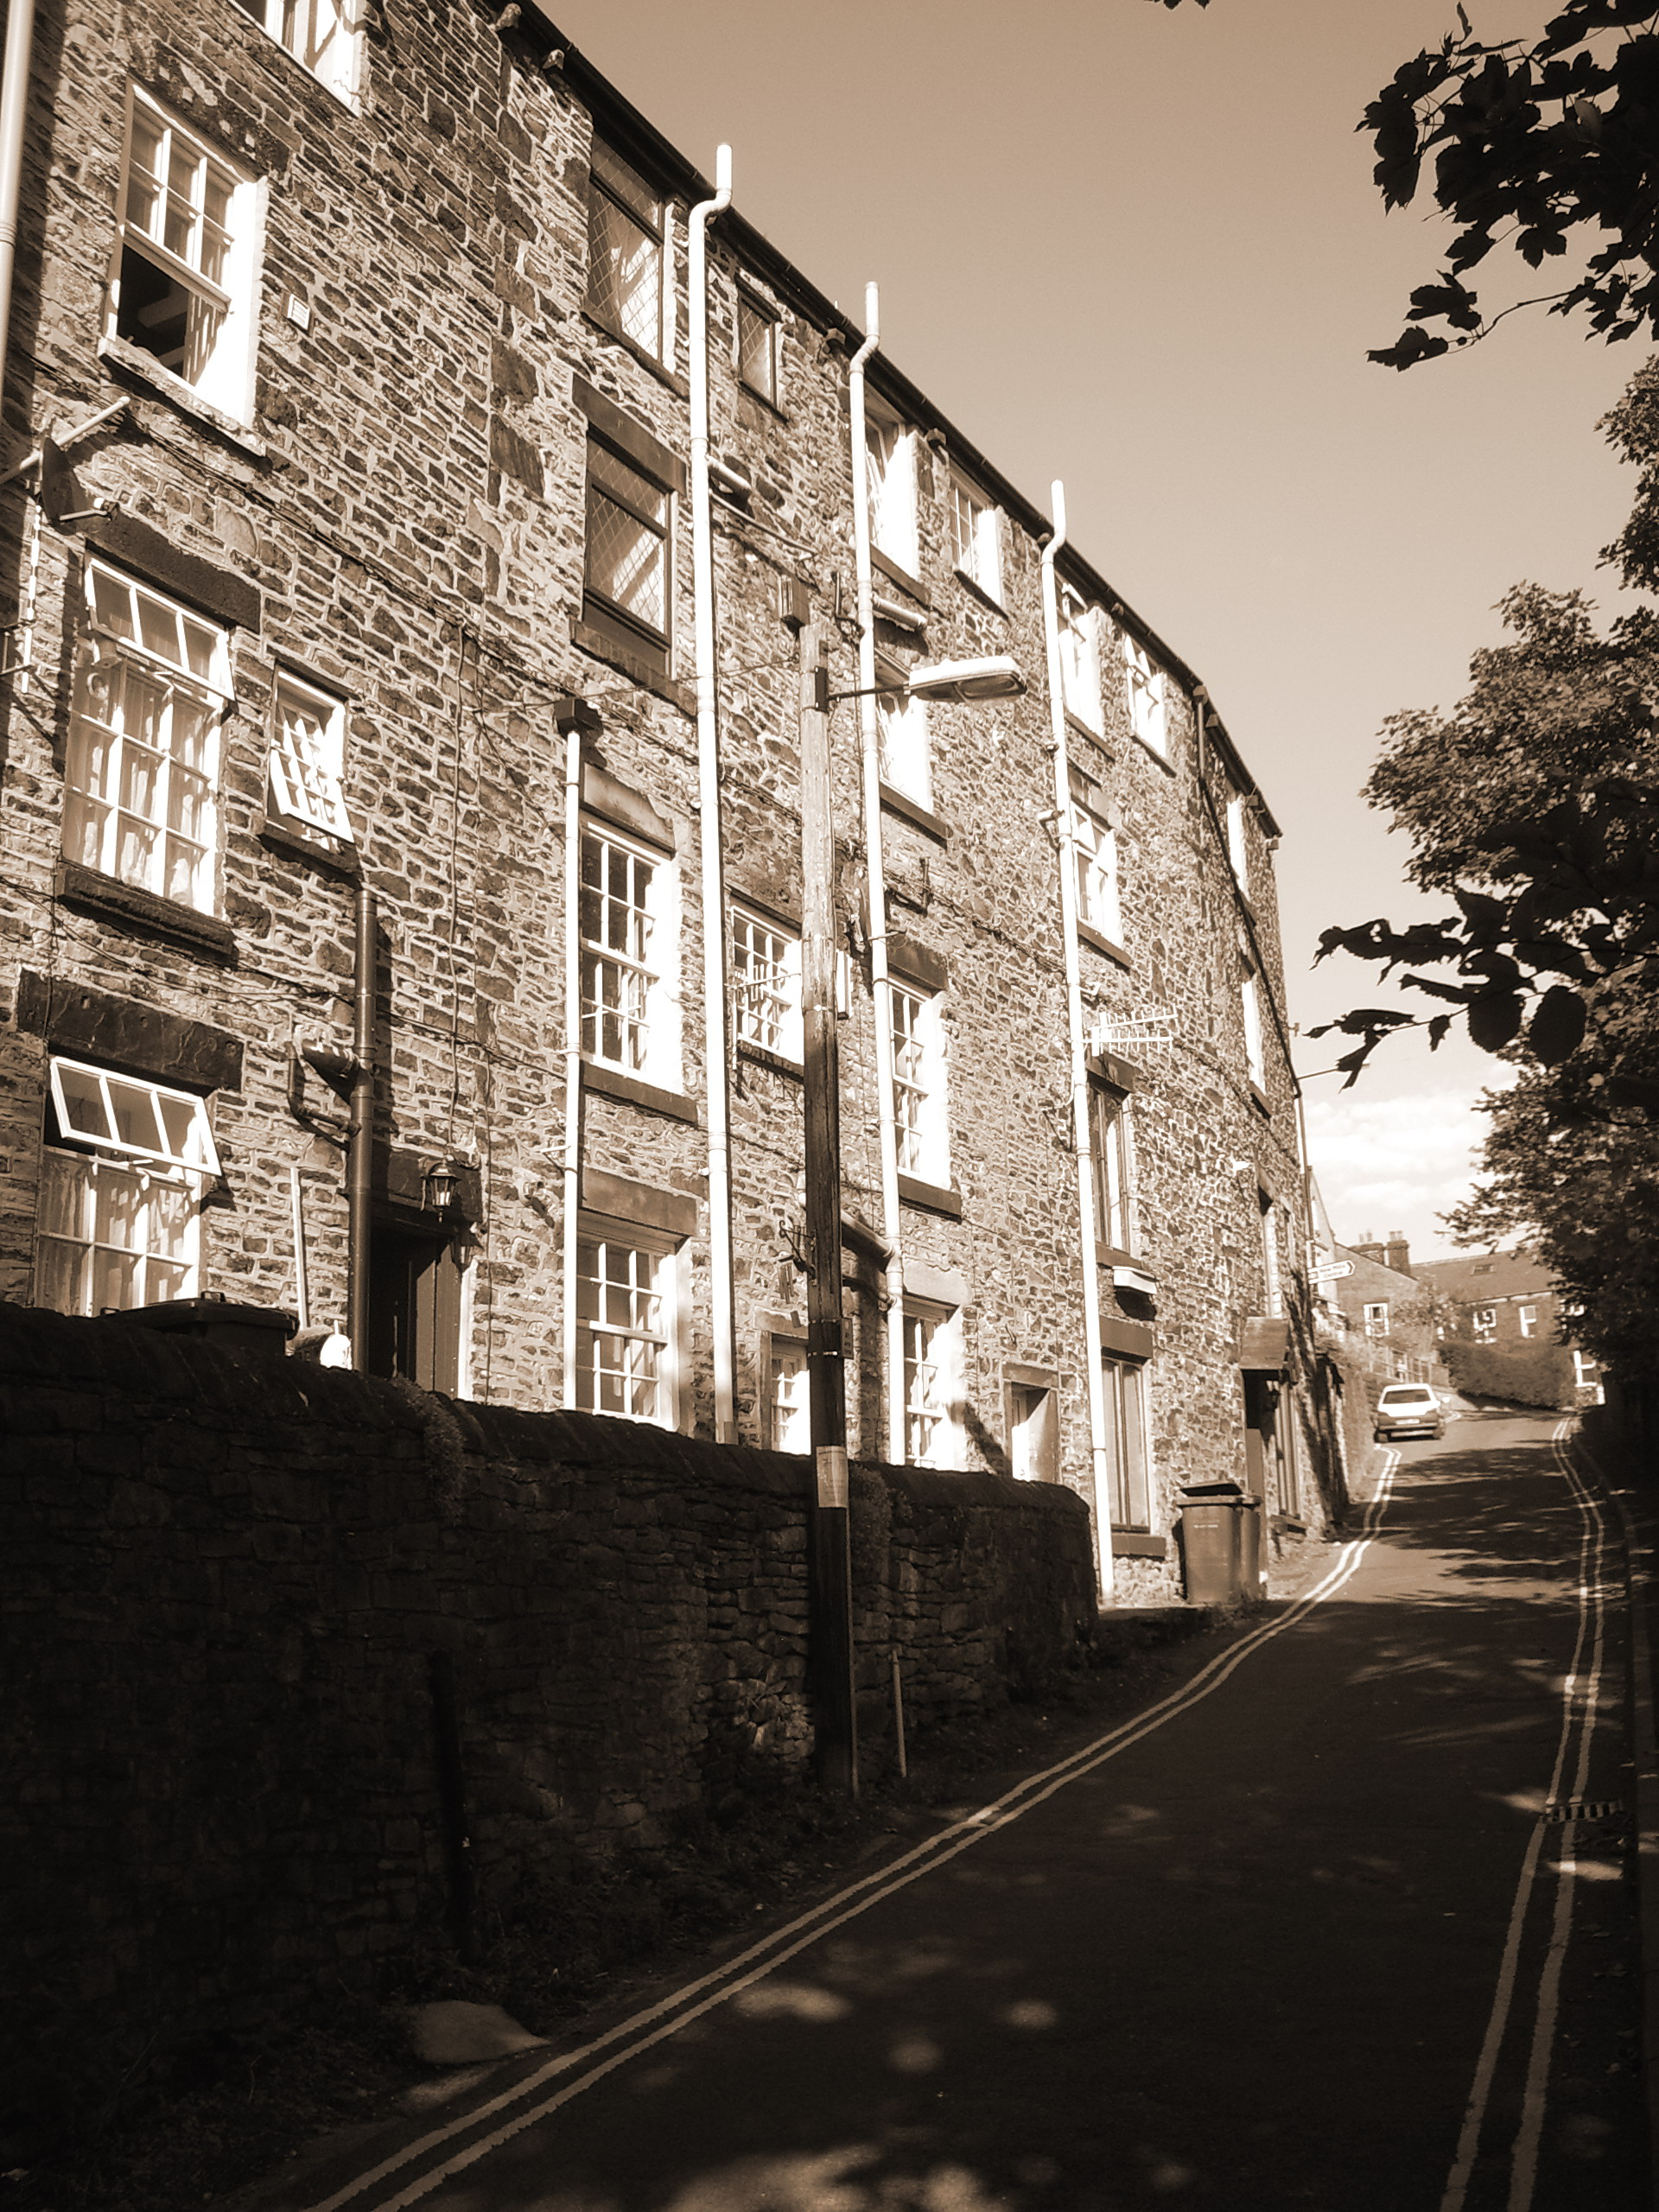 Under dwellings on Station Road